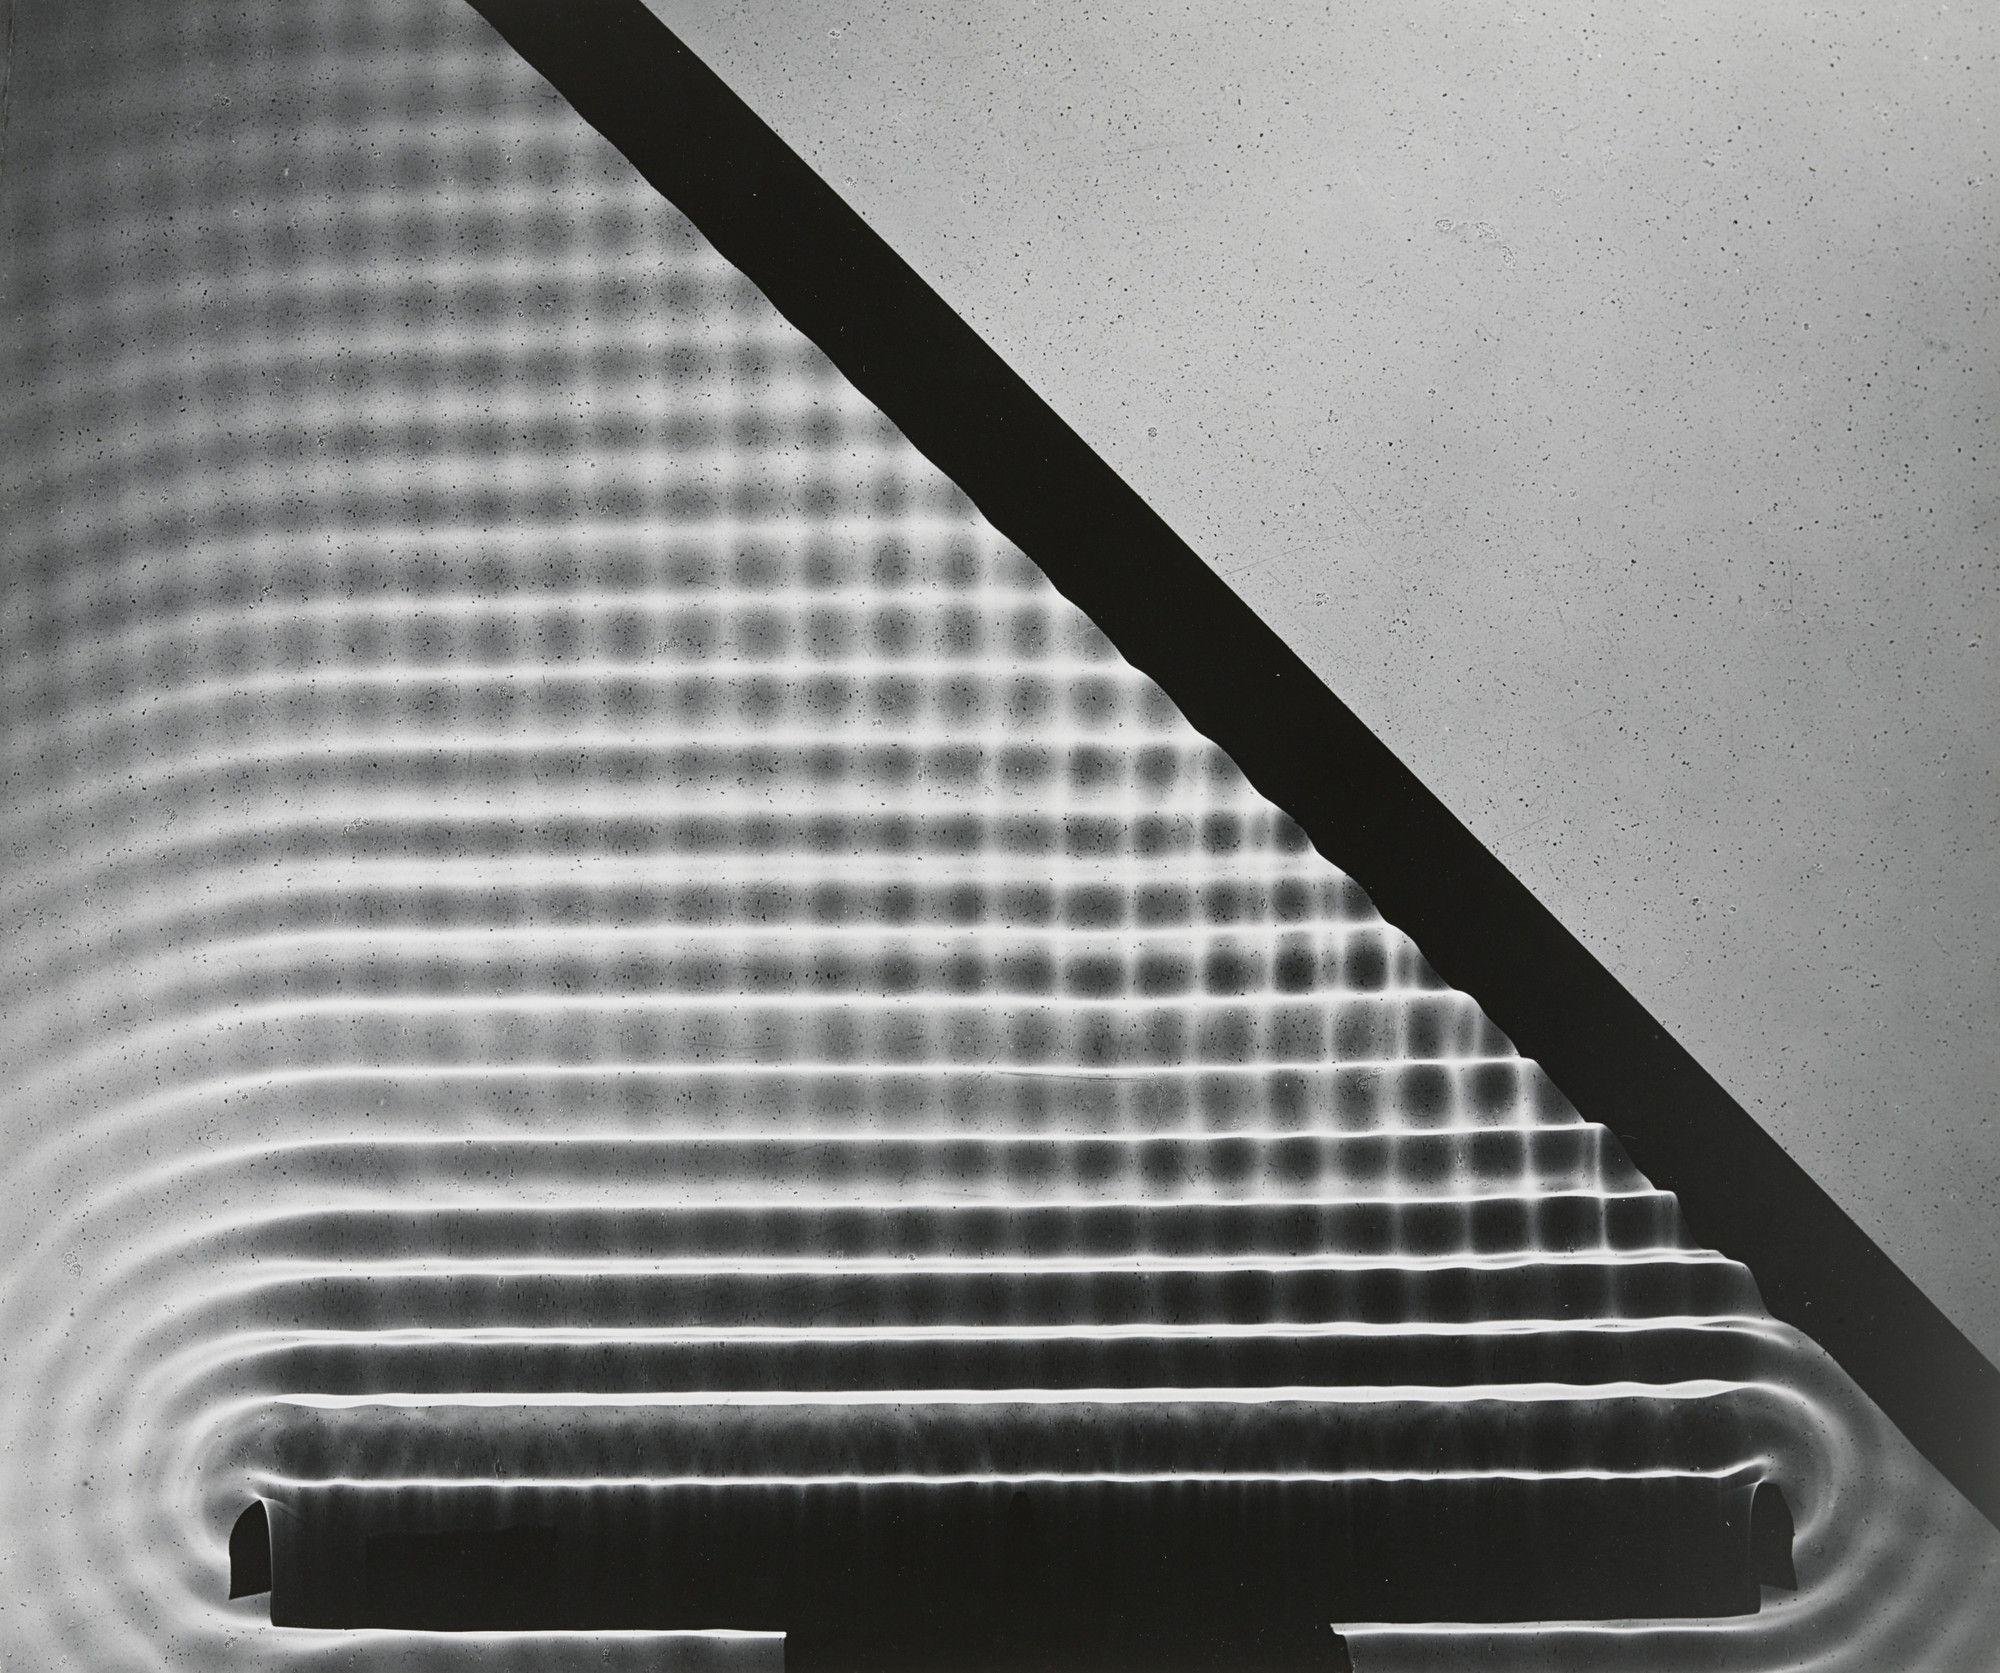 Berenice Abbott. Photogram: Wave Pattern, MIT. 1958-61